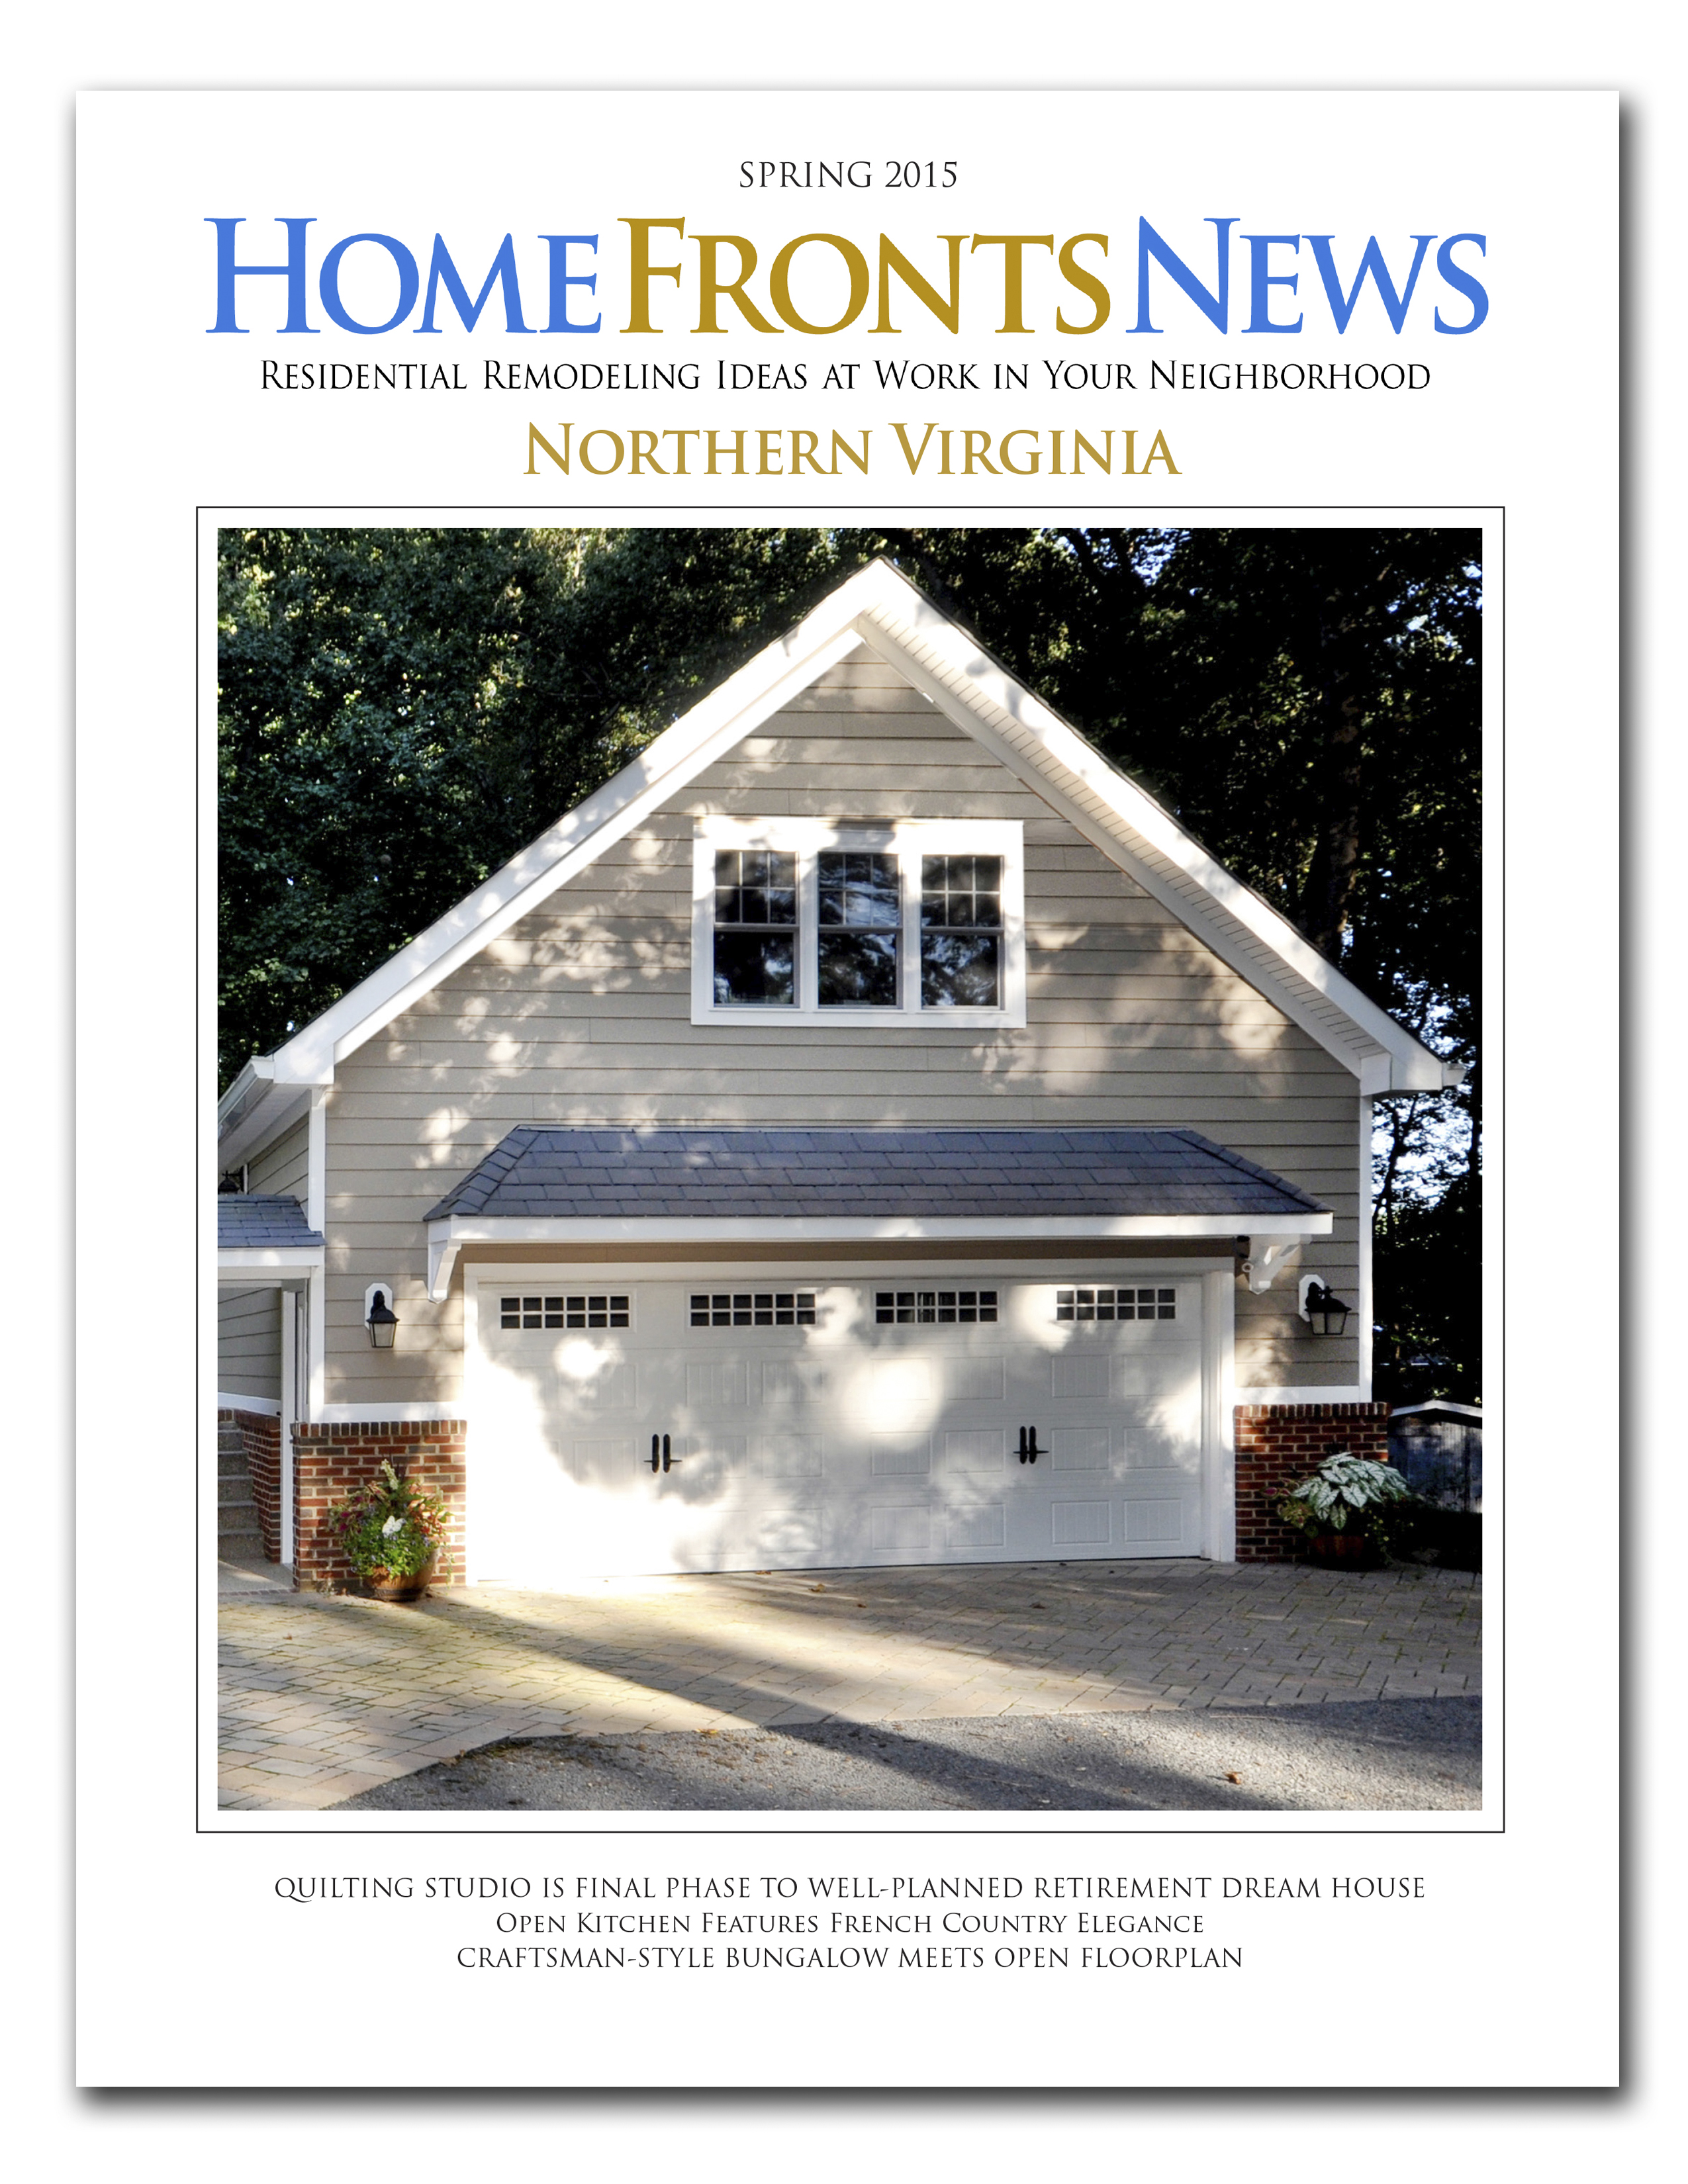 Home Fronts News SPRING